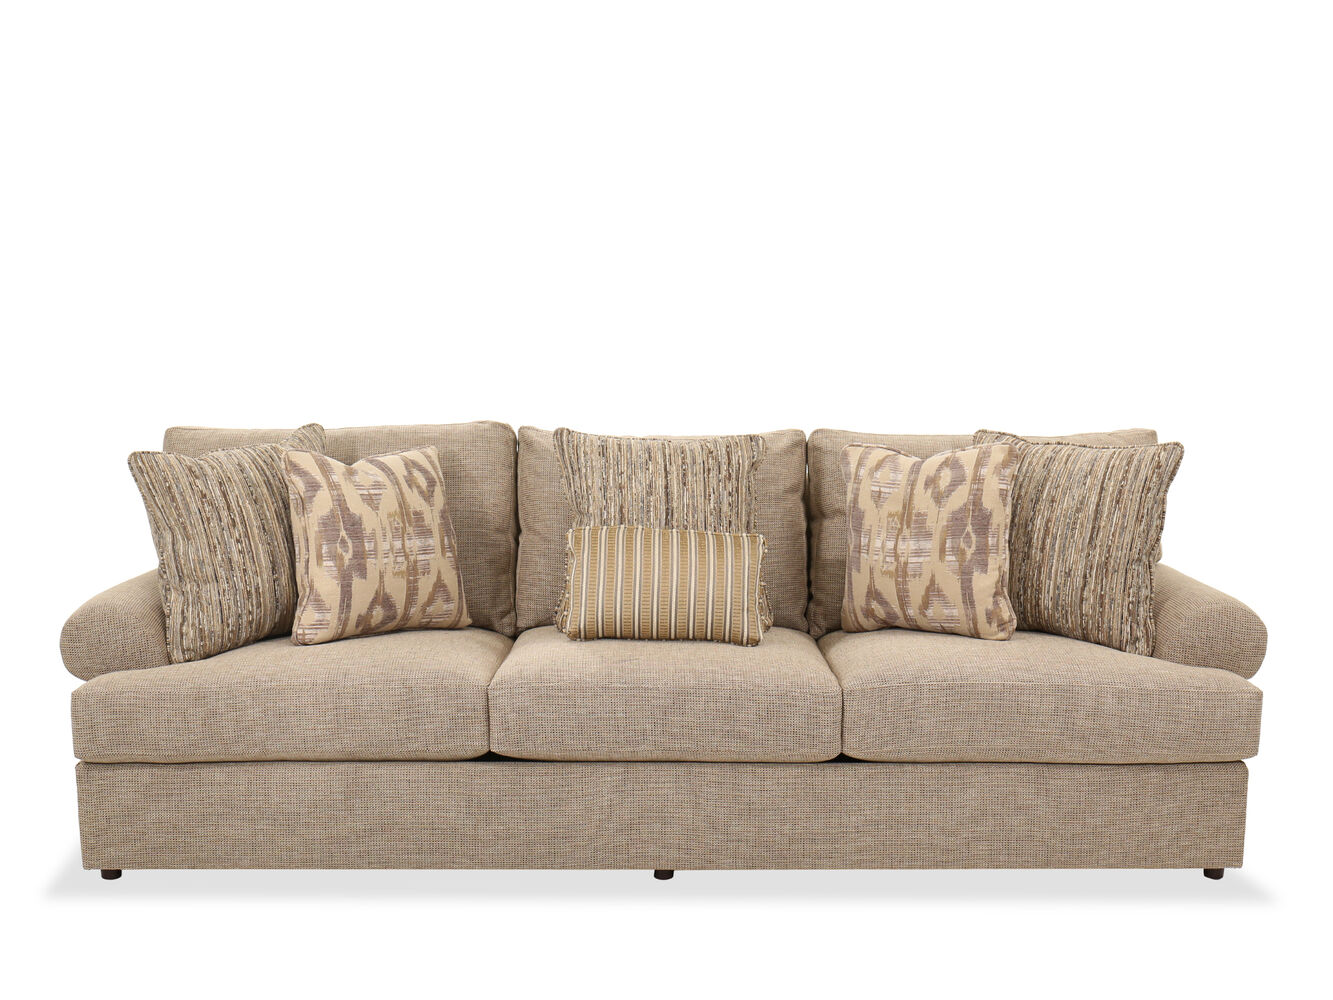 Bernhardt andrew sofa mathis brothers furniture for Bernhardt furniture